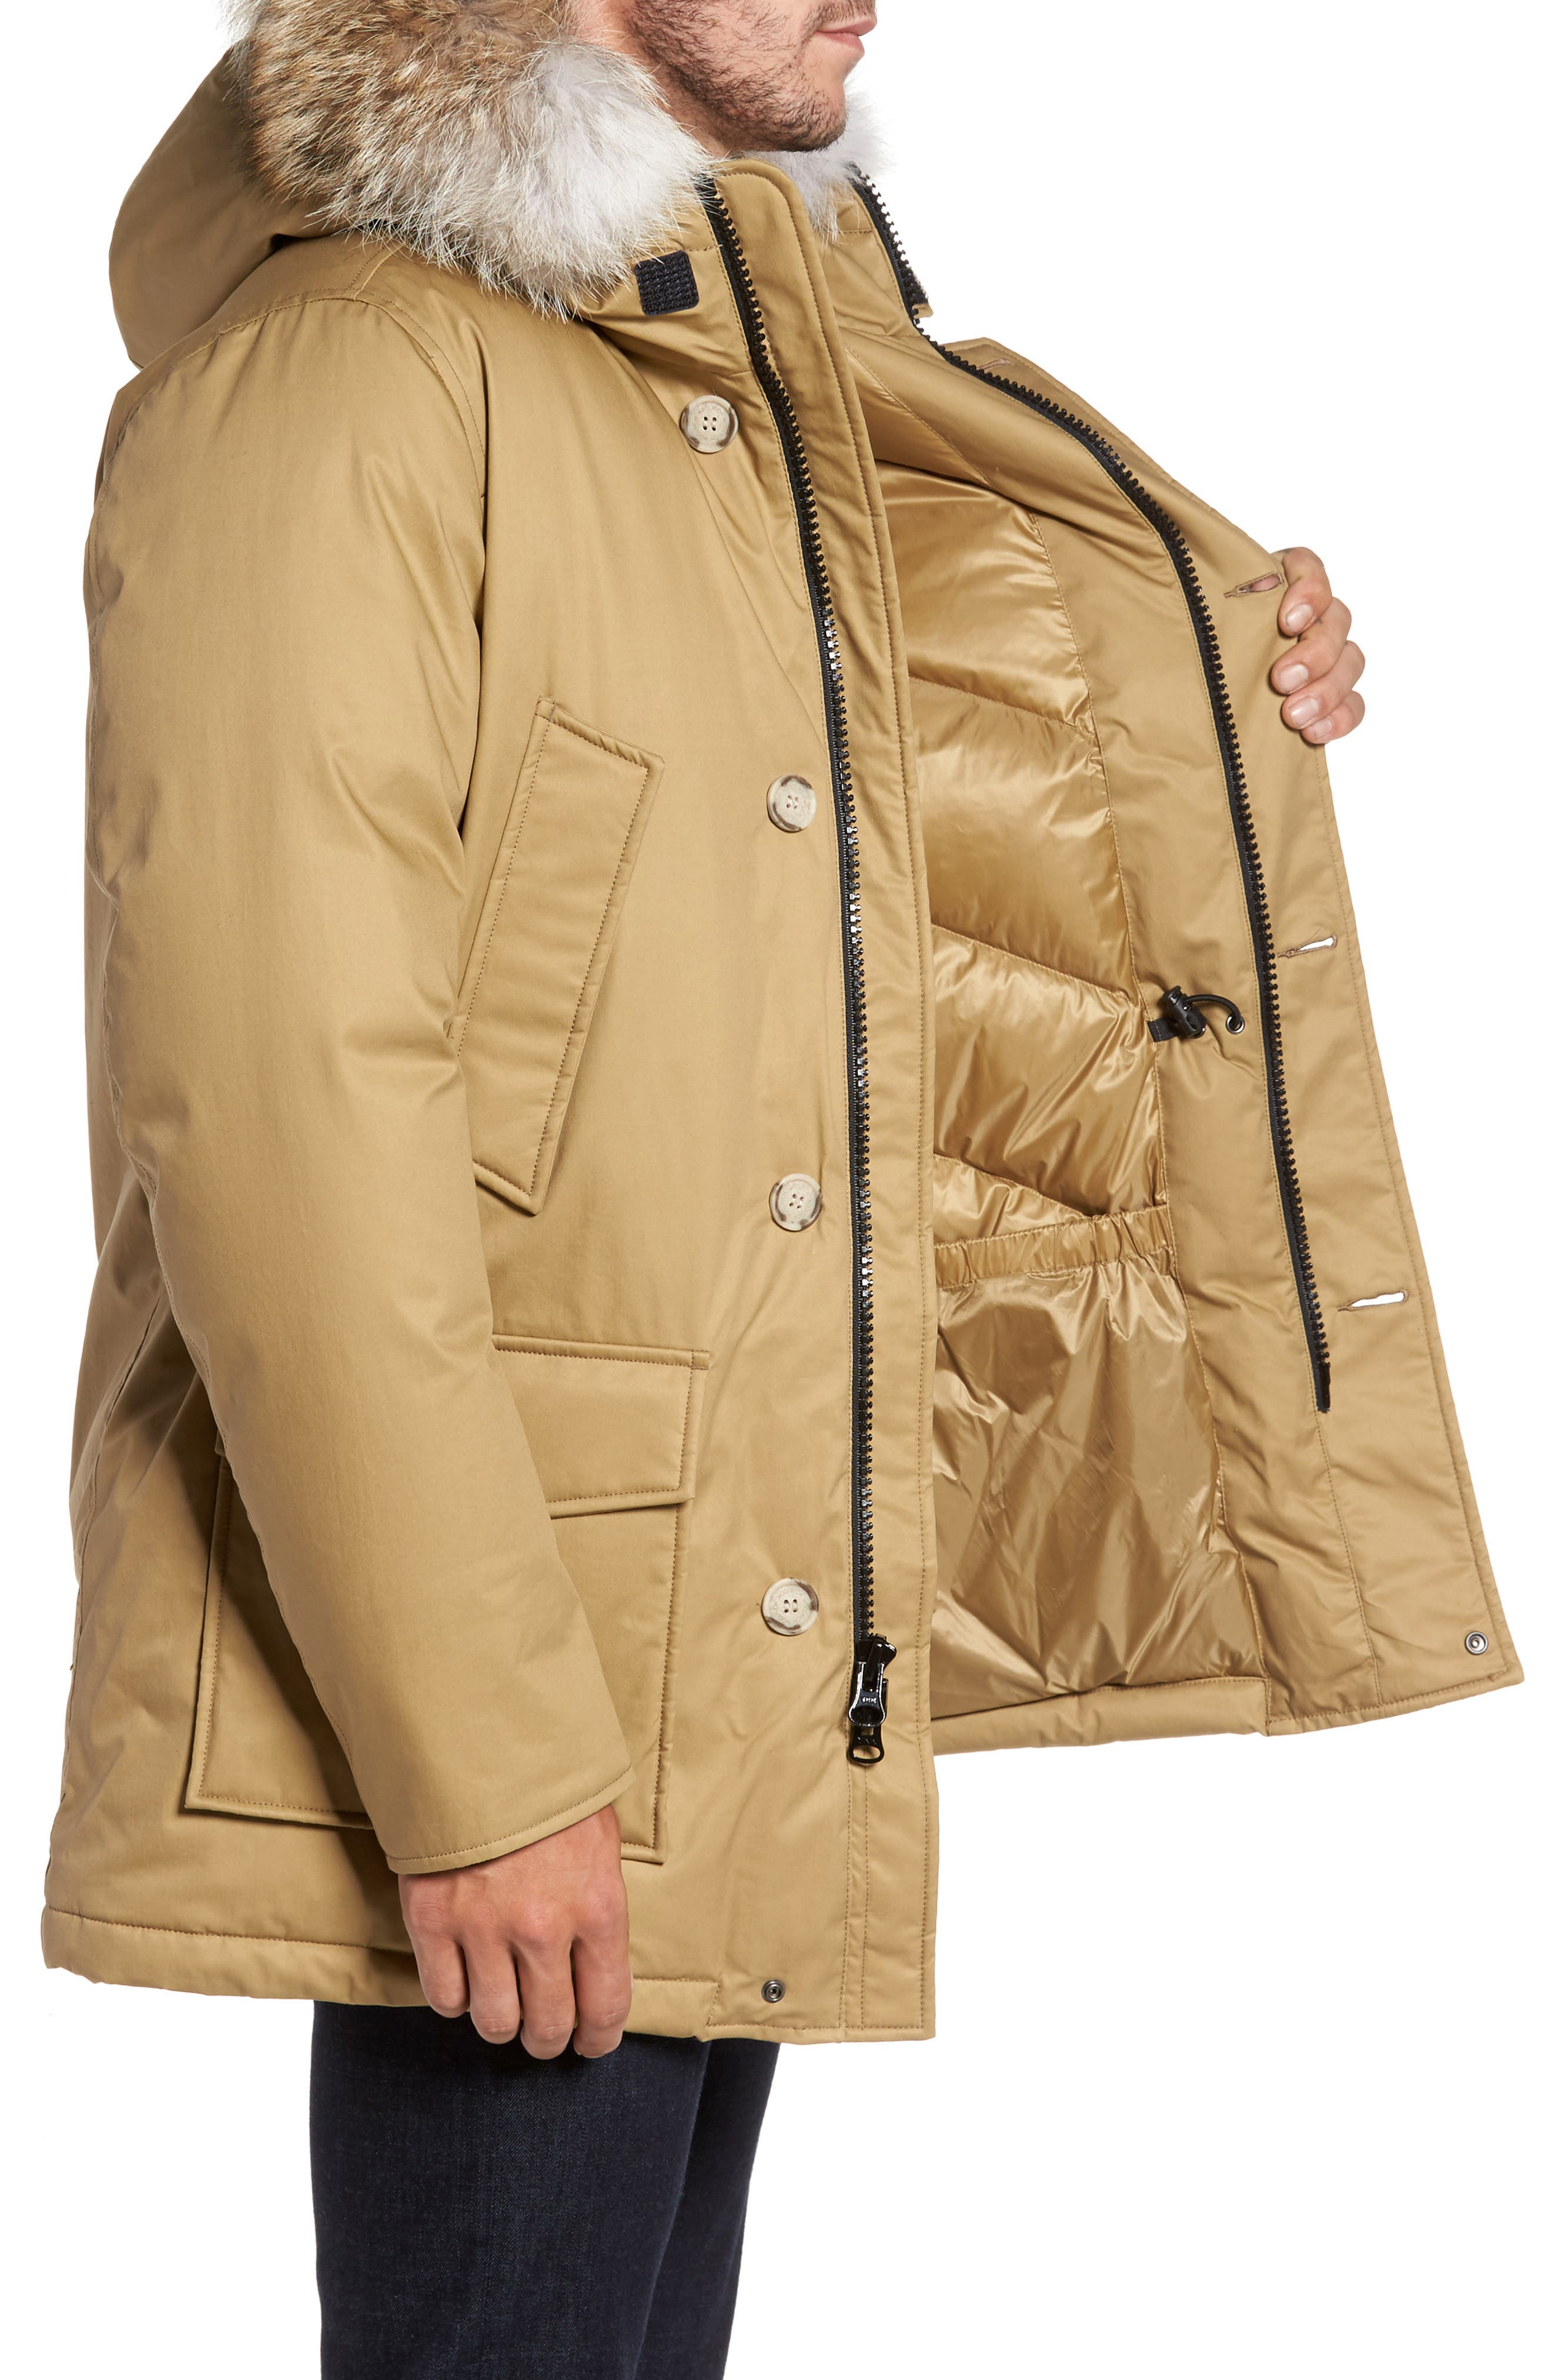 John Rich & Bros. Laminated Cotton Down Parka with Genuine Coyote Fur Trim,                             Alternate thumbnail 6, color,